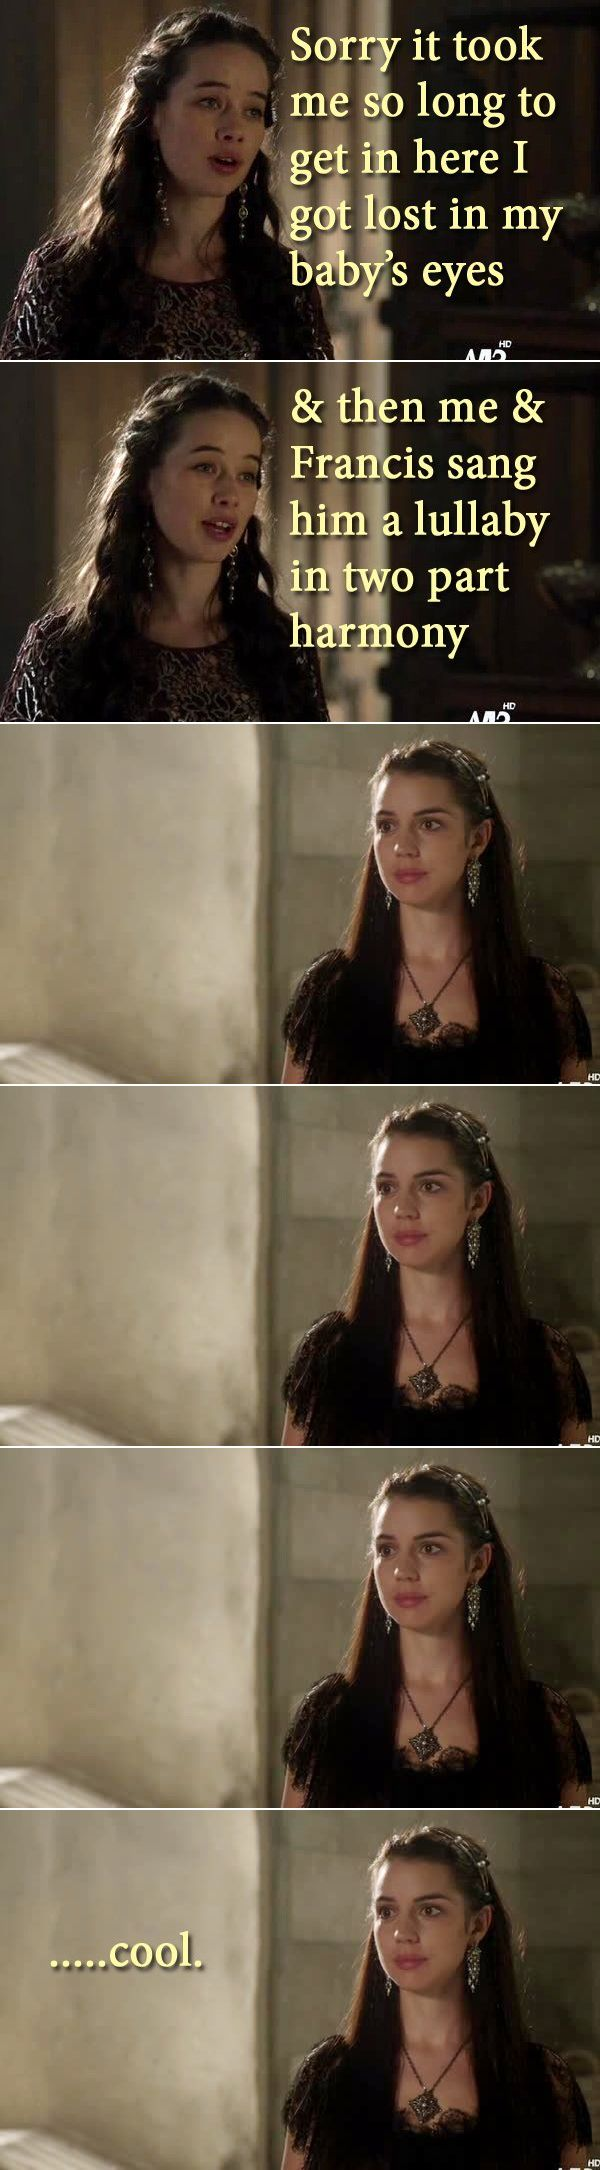 """Reign"" season 2, episode 2 review"